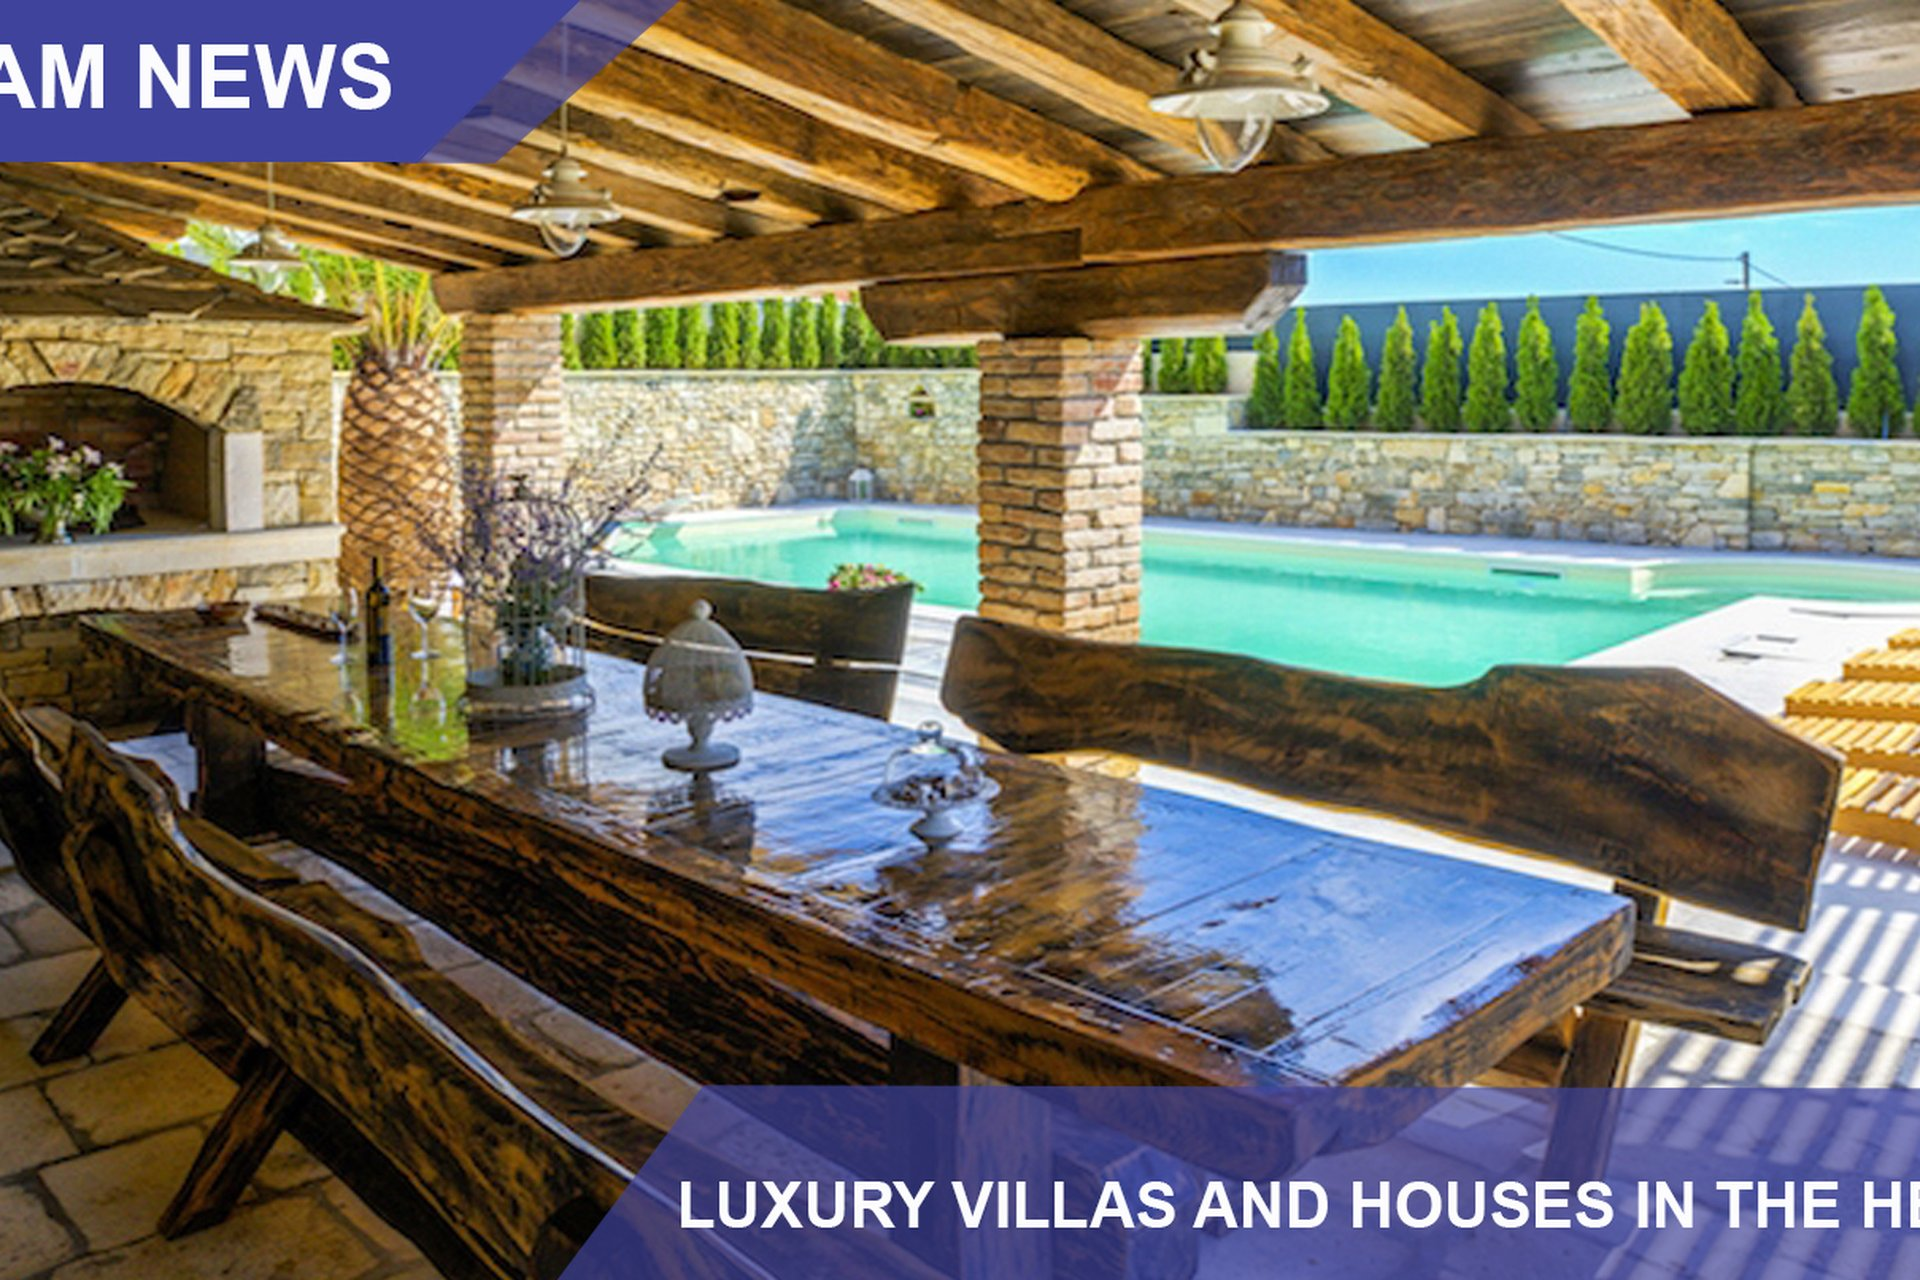 LUXURY VILLAS AND HOUSES IN THE HEART OF NATURE - INVEST IN RURAL TOURISM + LUXURY!